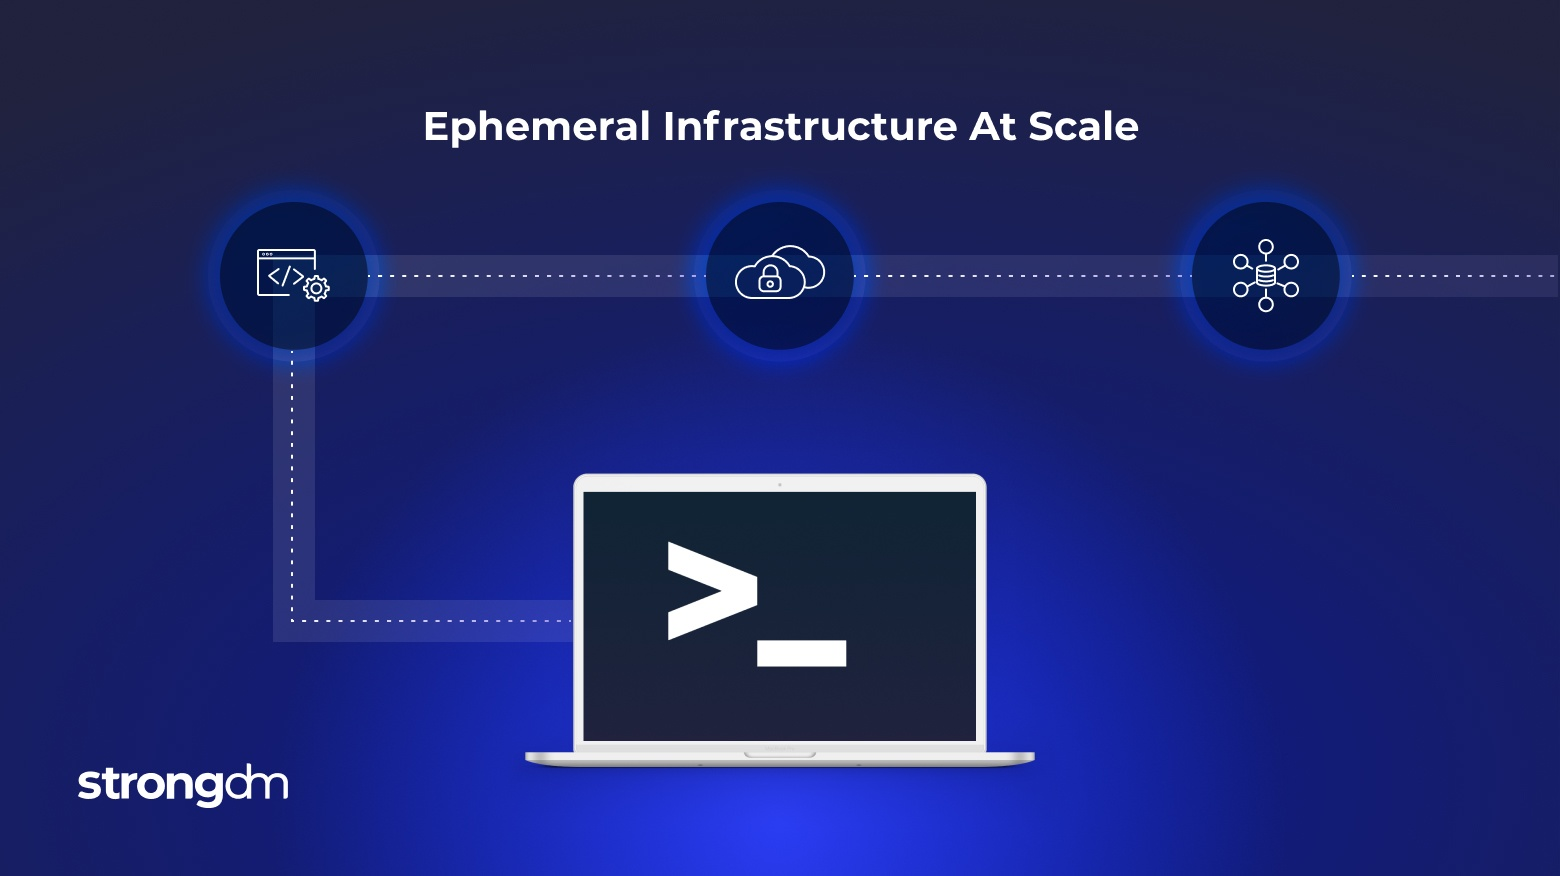 Managing Access to Ephemeral Servers At Scale